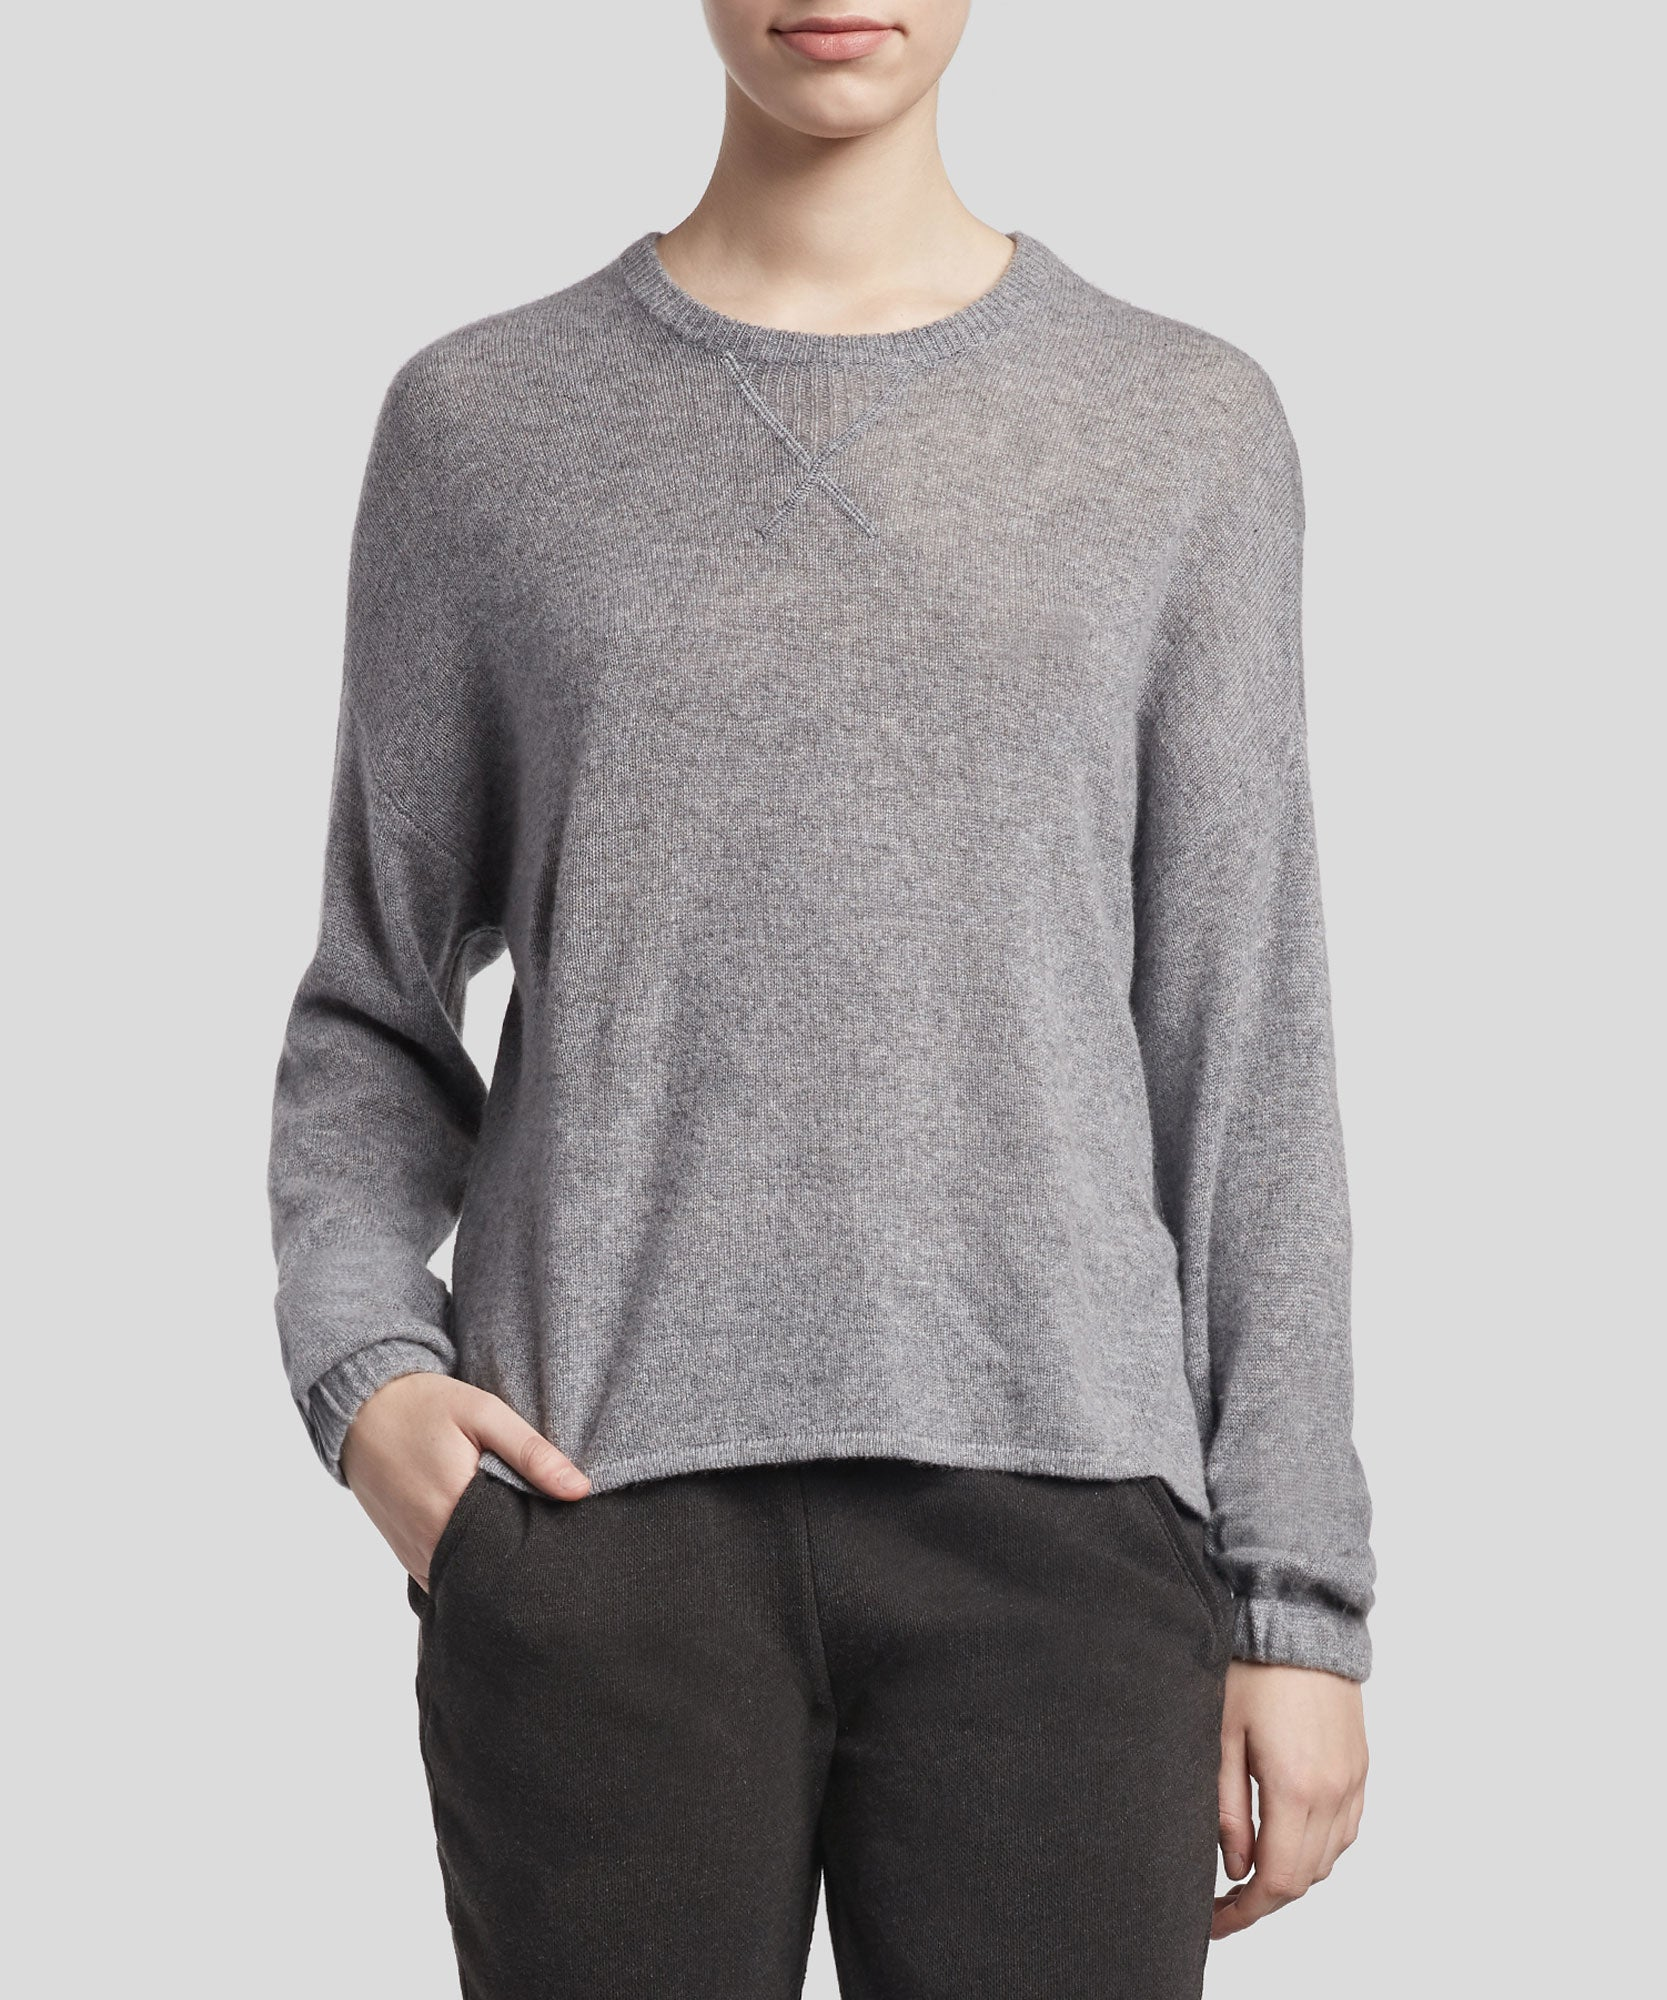 Heather Grey Cashmere Crew Neck Sweater - Women's Luxe Sweater by ATM Anthony Thomas Melillo